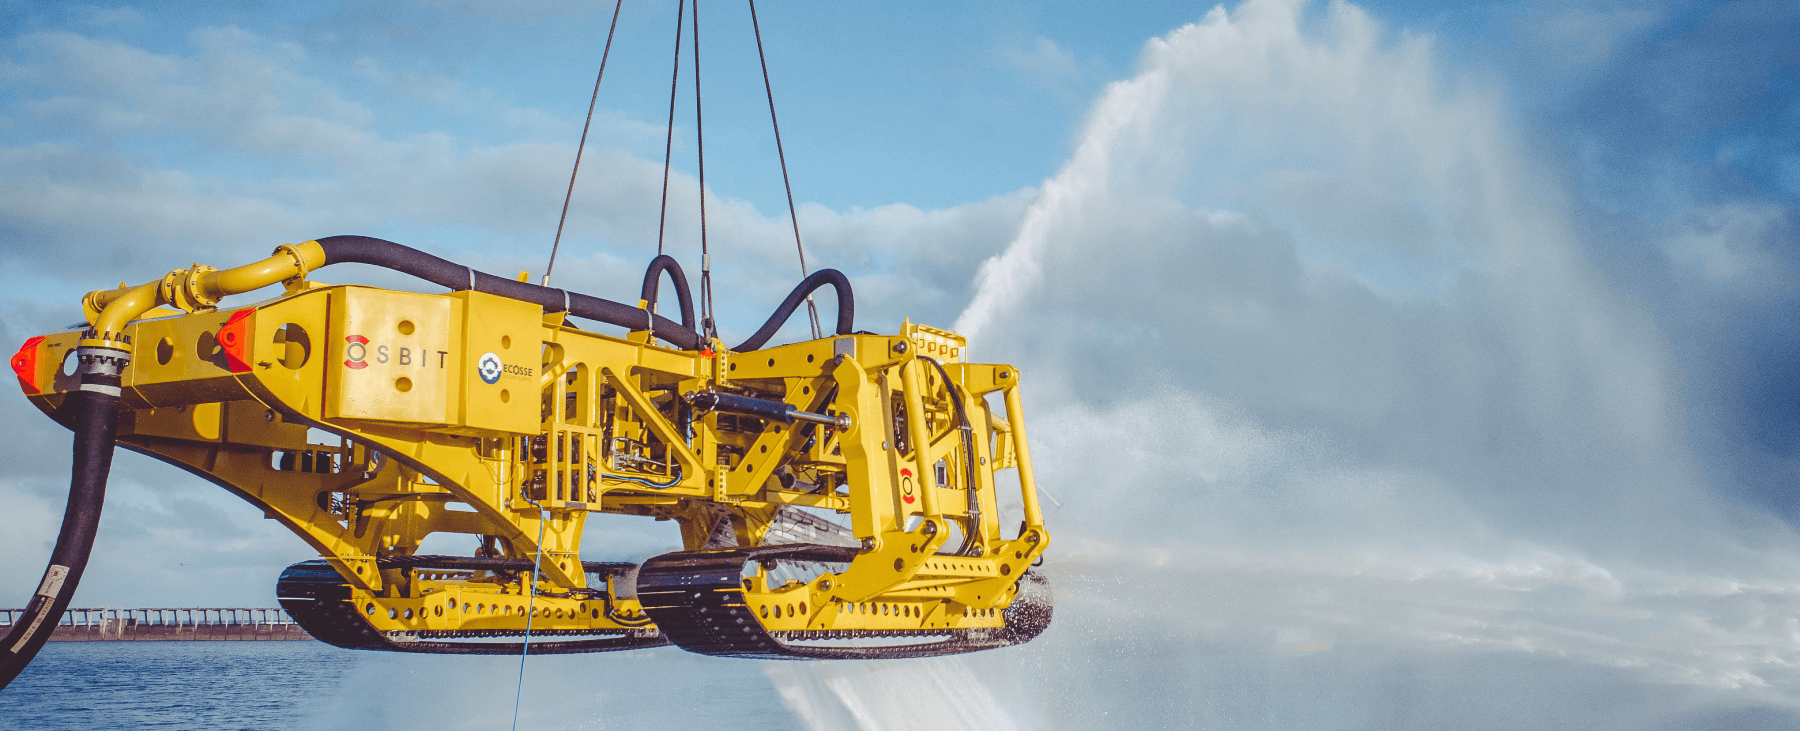 Subsea Trenching • Osbit